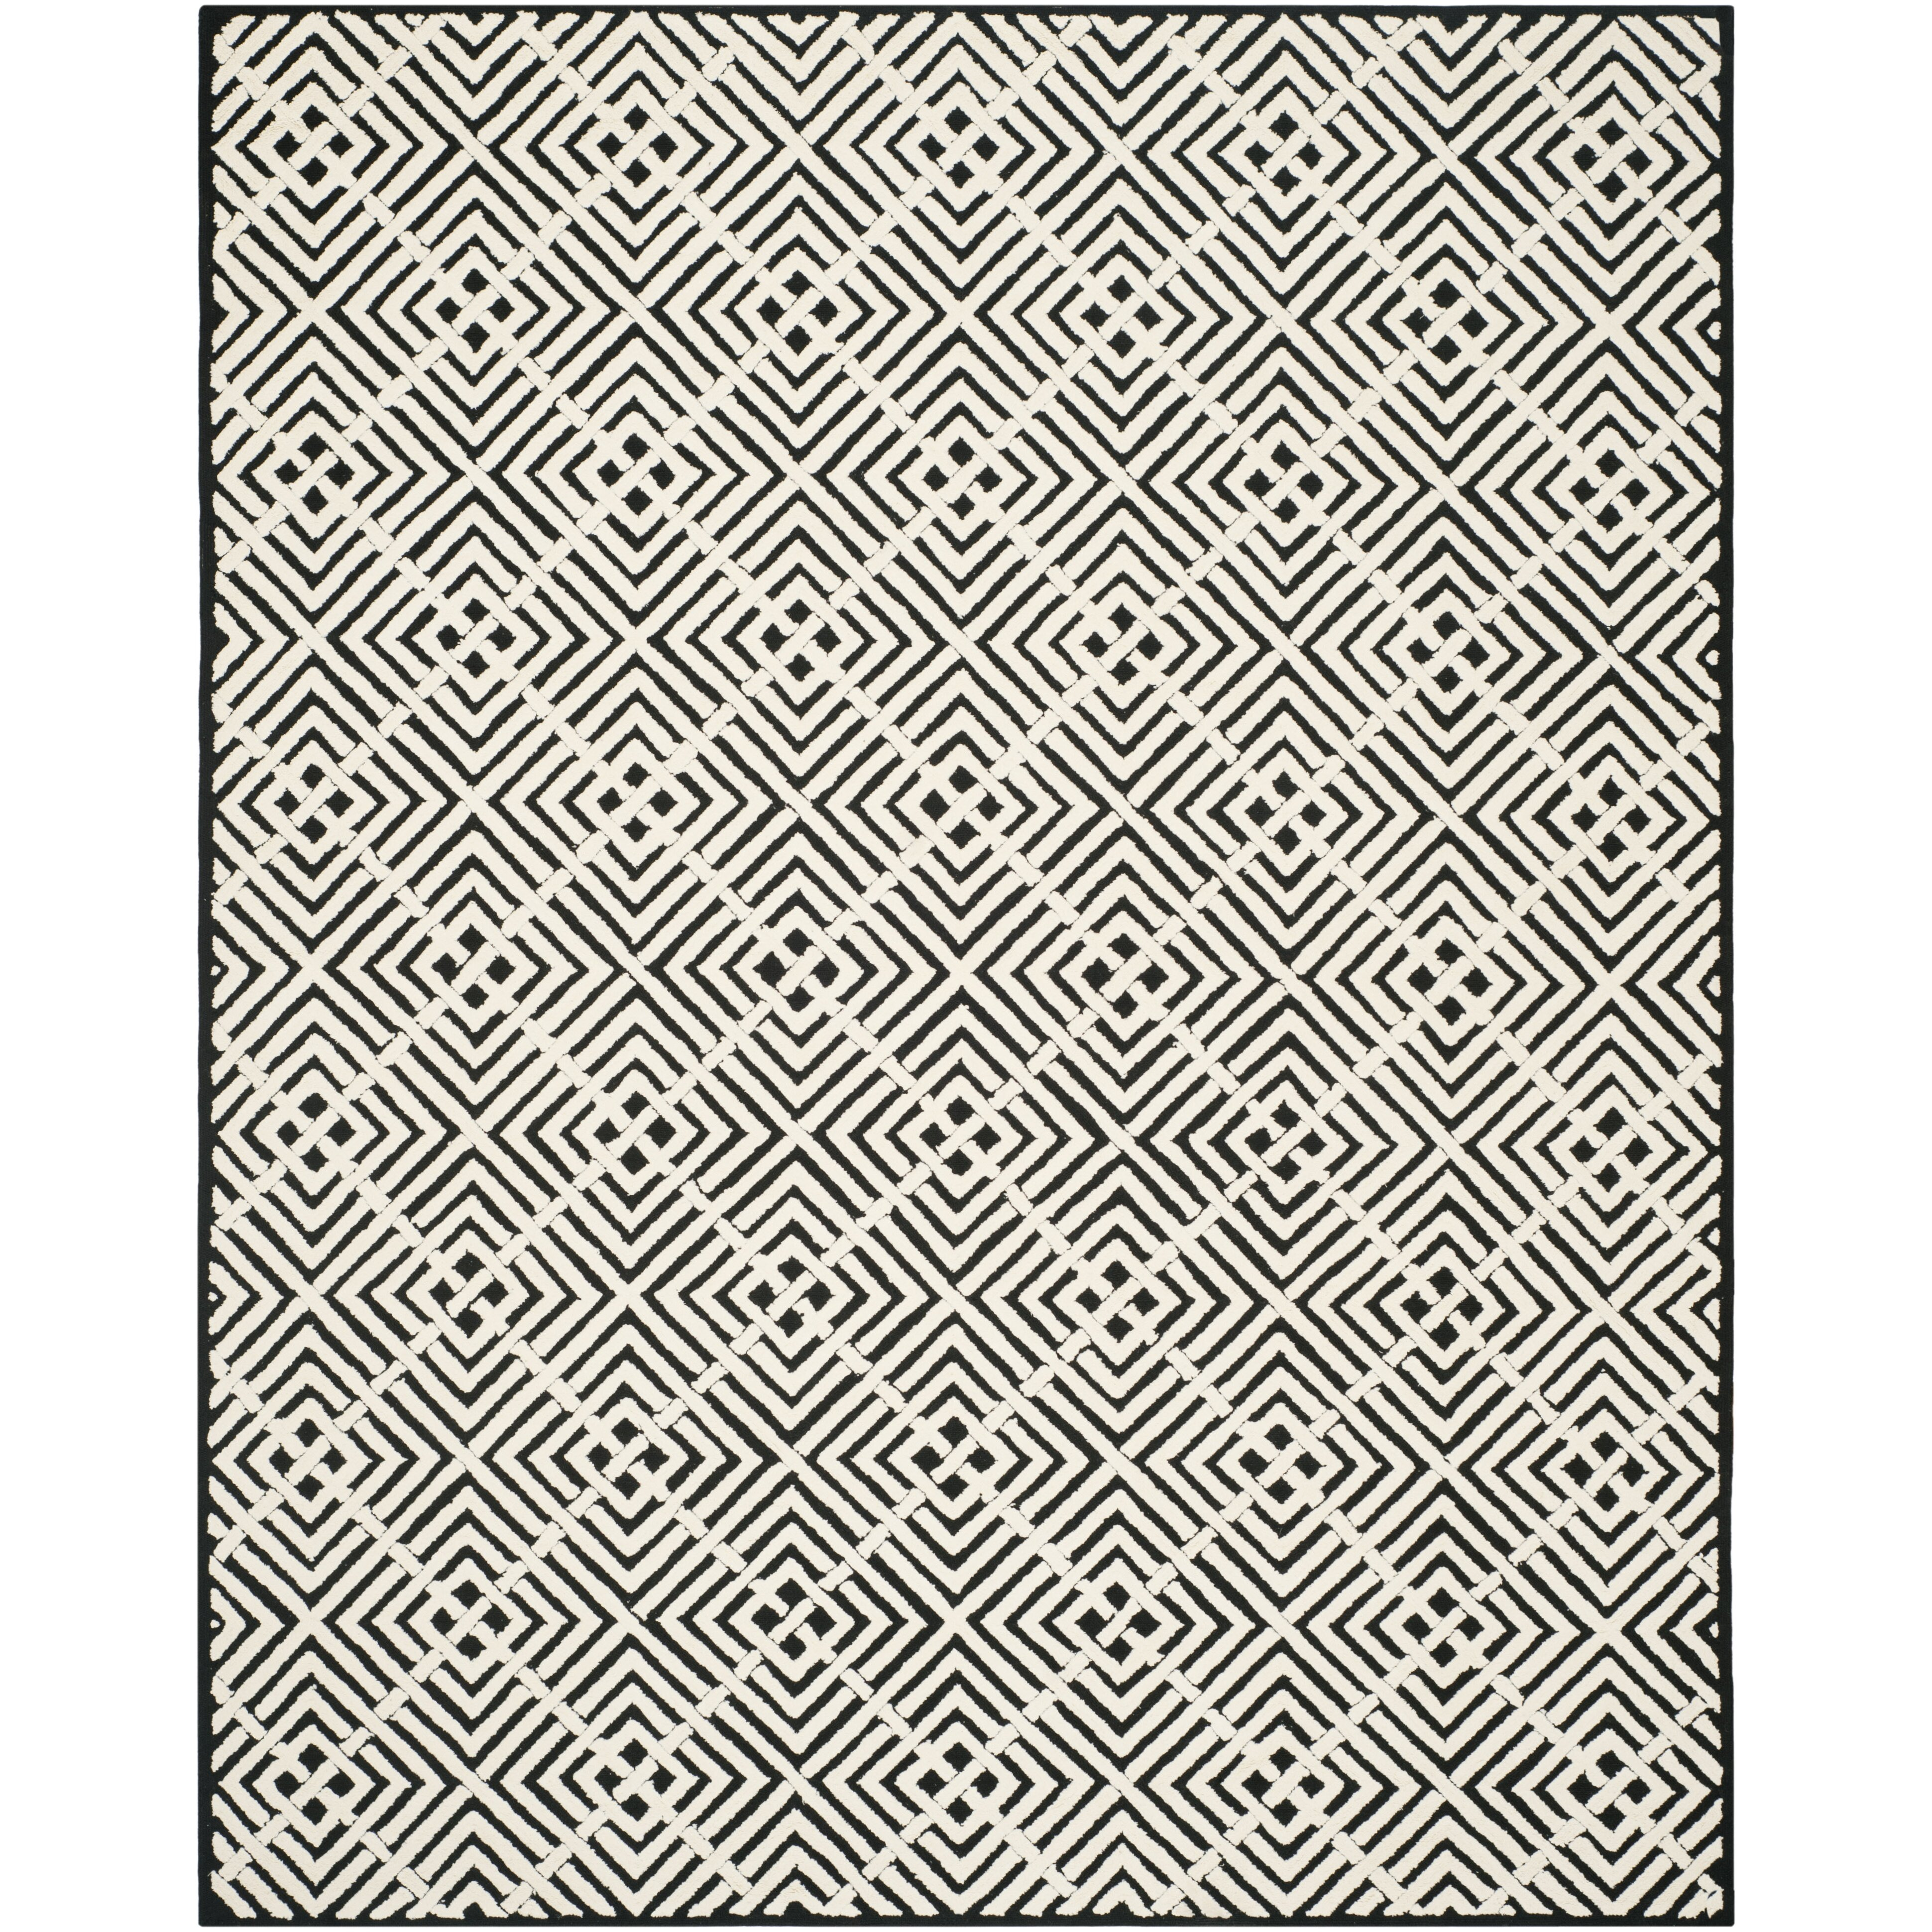 Black And White Geometric Rugs For Sale: Safavieh Newport Black/White Geometric Area Rug & Reviews